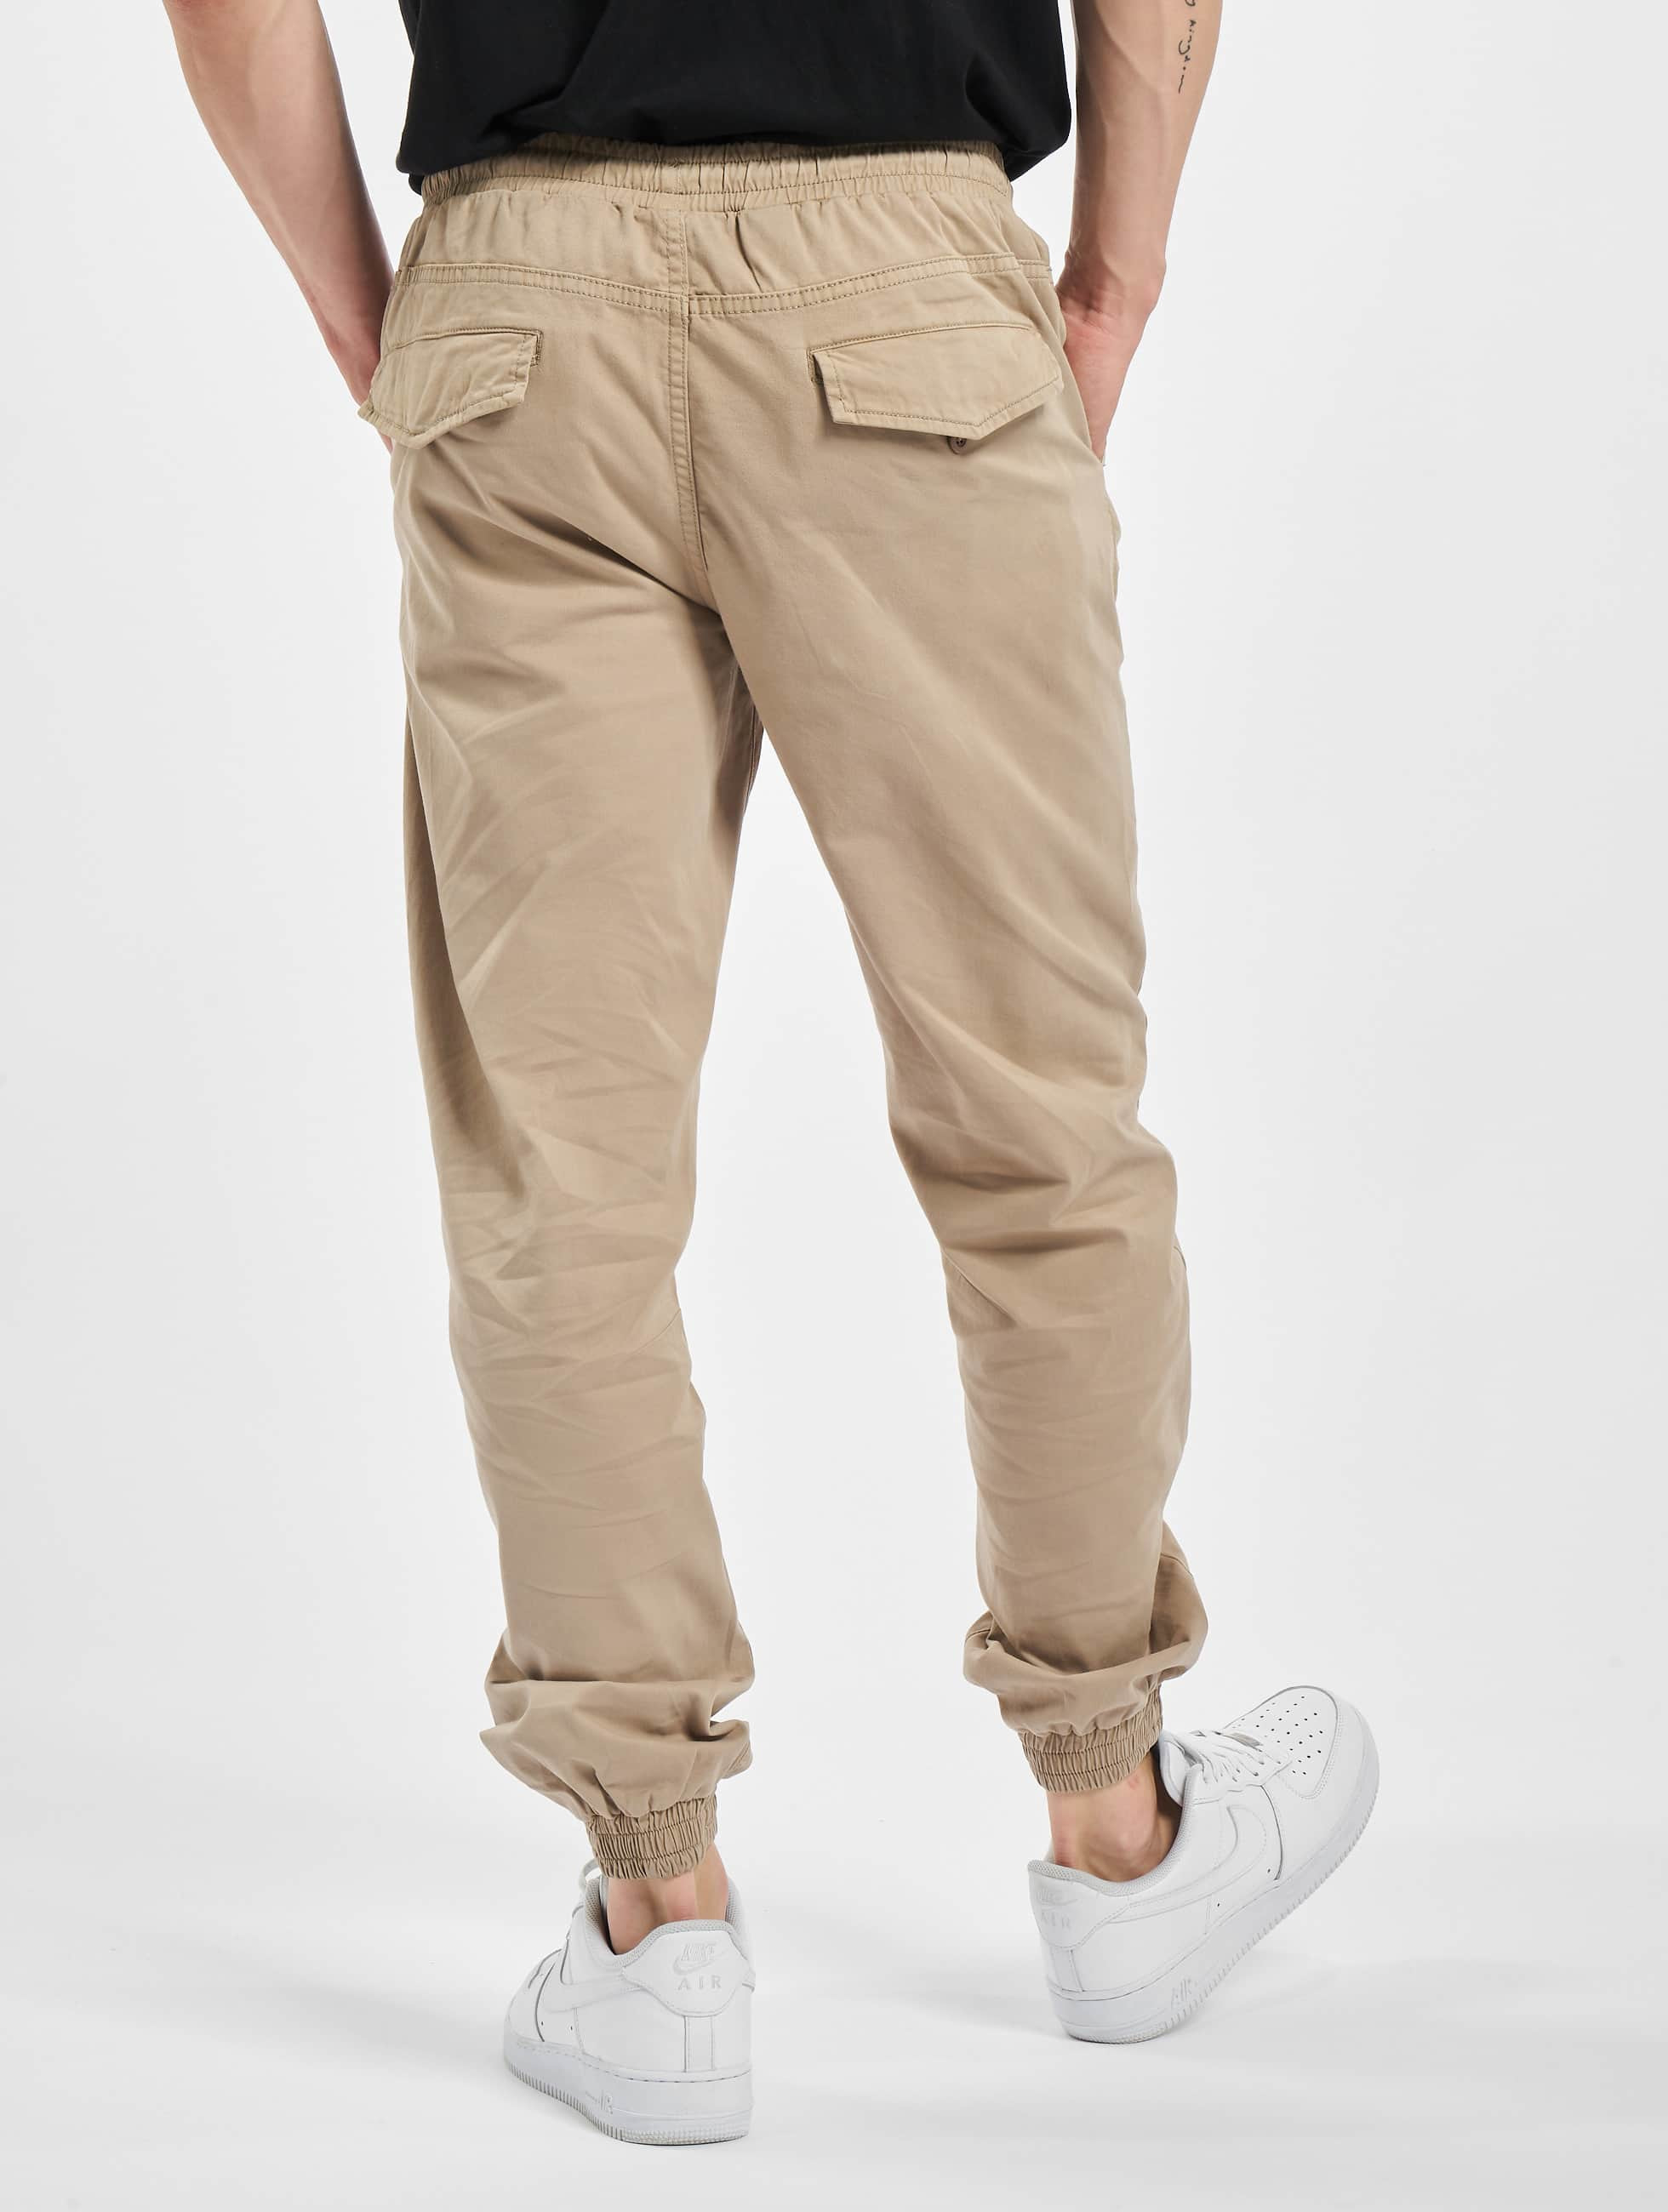 Urban Classics Jogginghose Stretch Twill beige